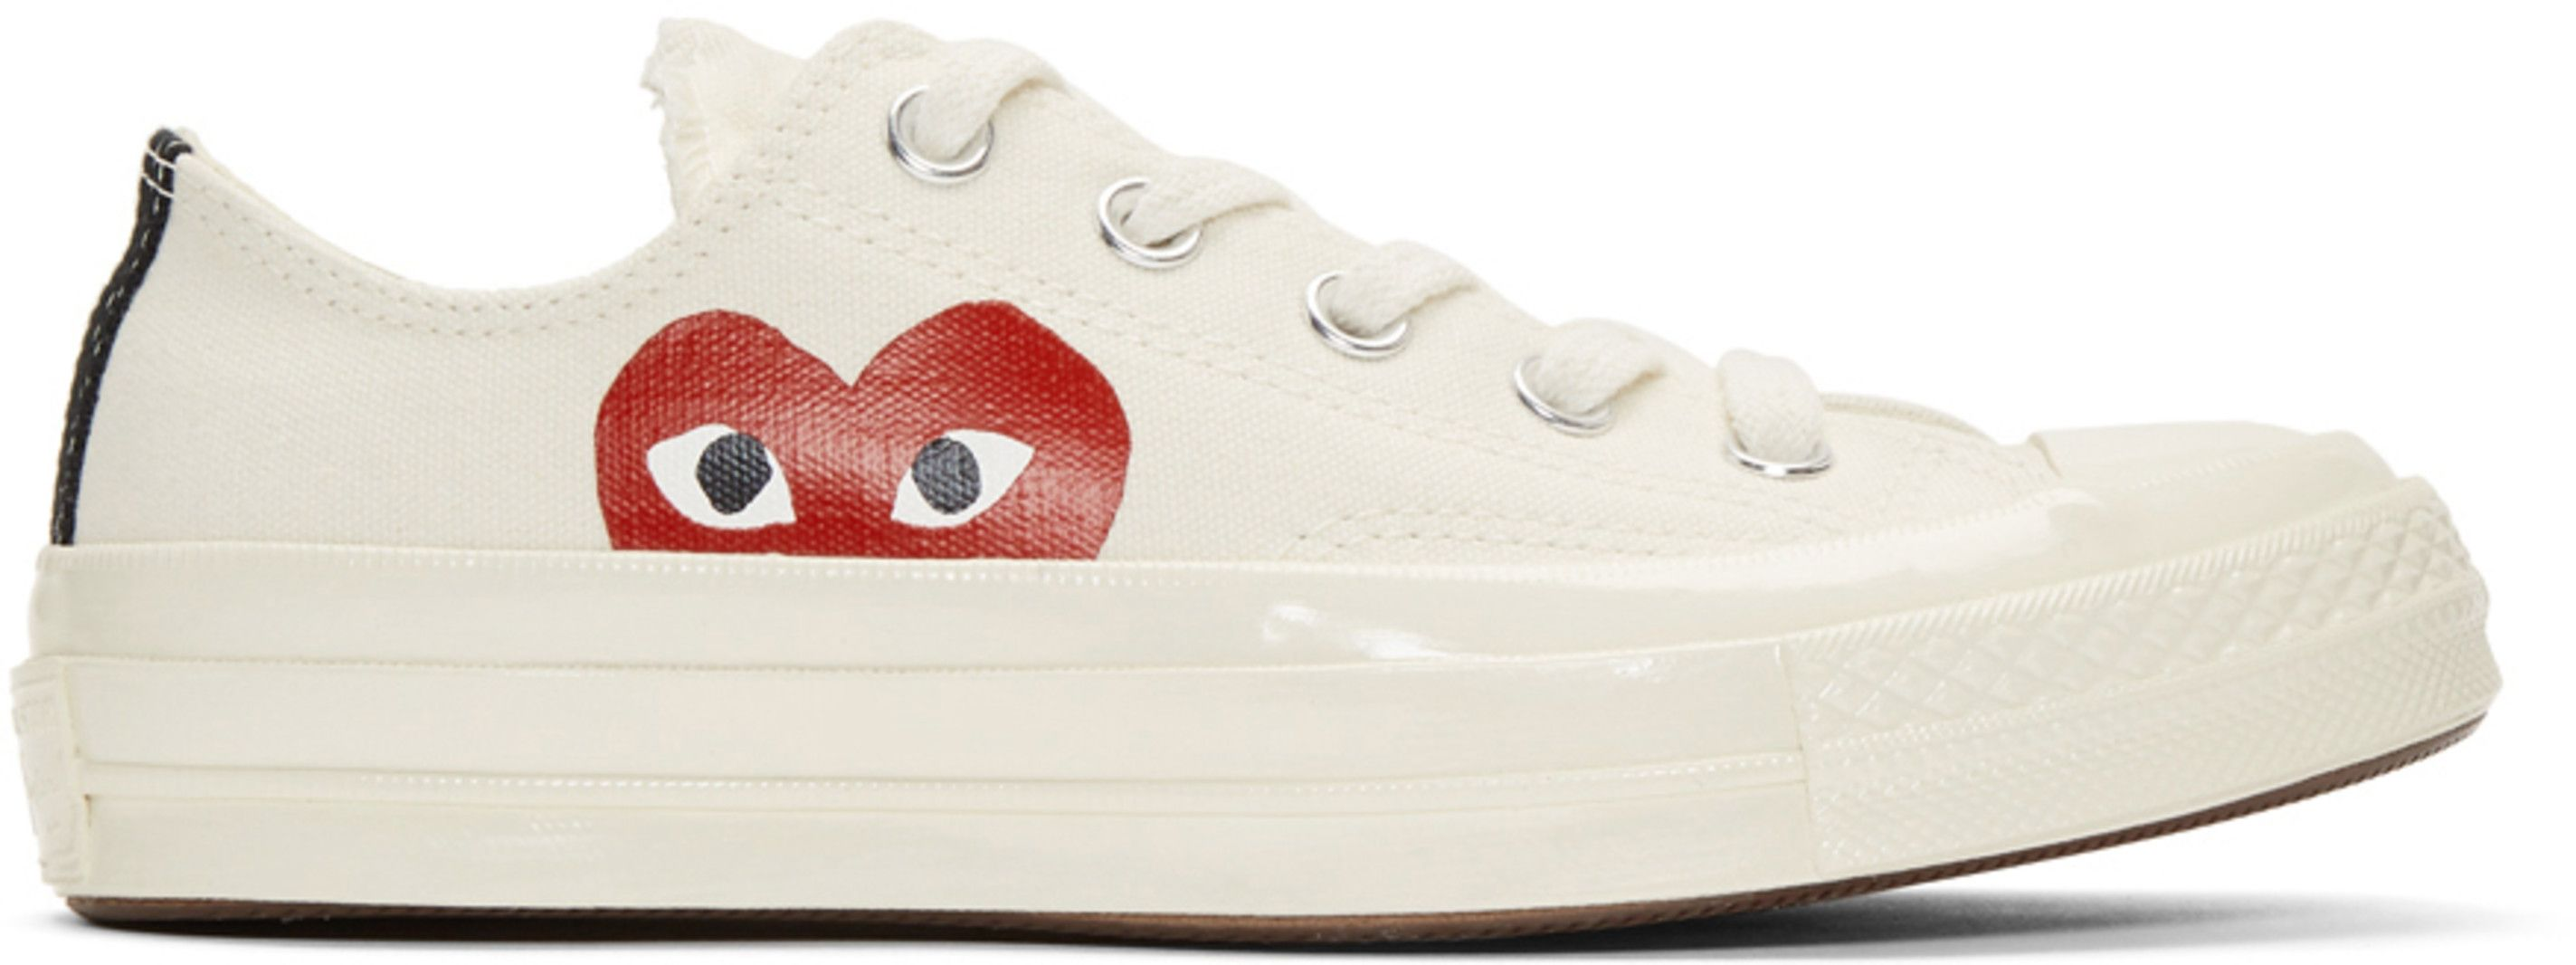 a7a4fa29aa9273 Comme des Garçons Play - Off-White Converse Edition Half Heart Chuck Taylor  All-Star  70 Sneakers